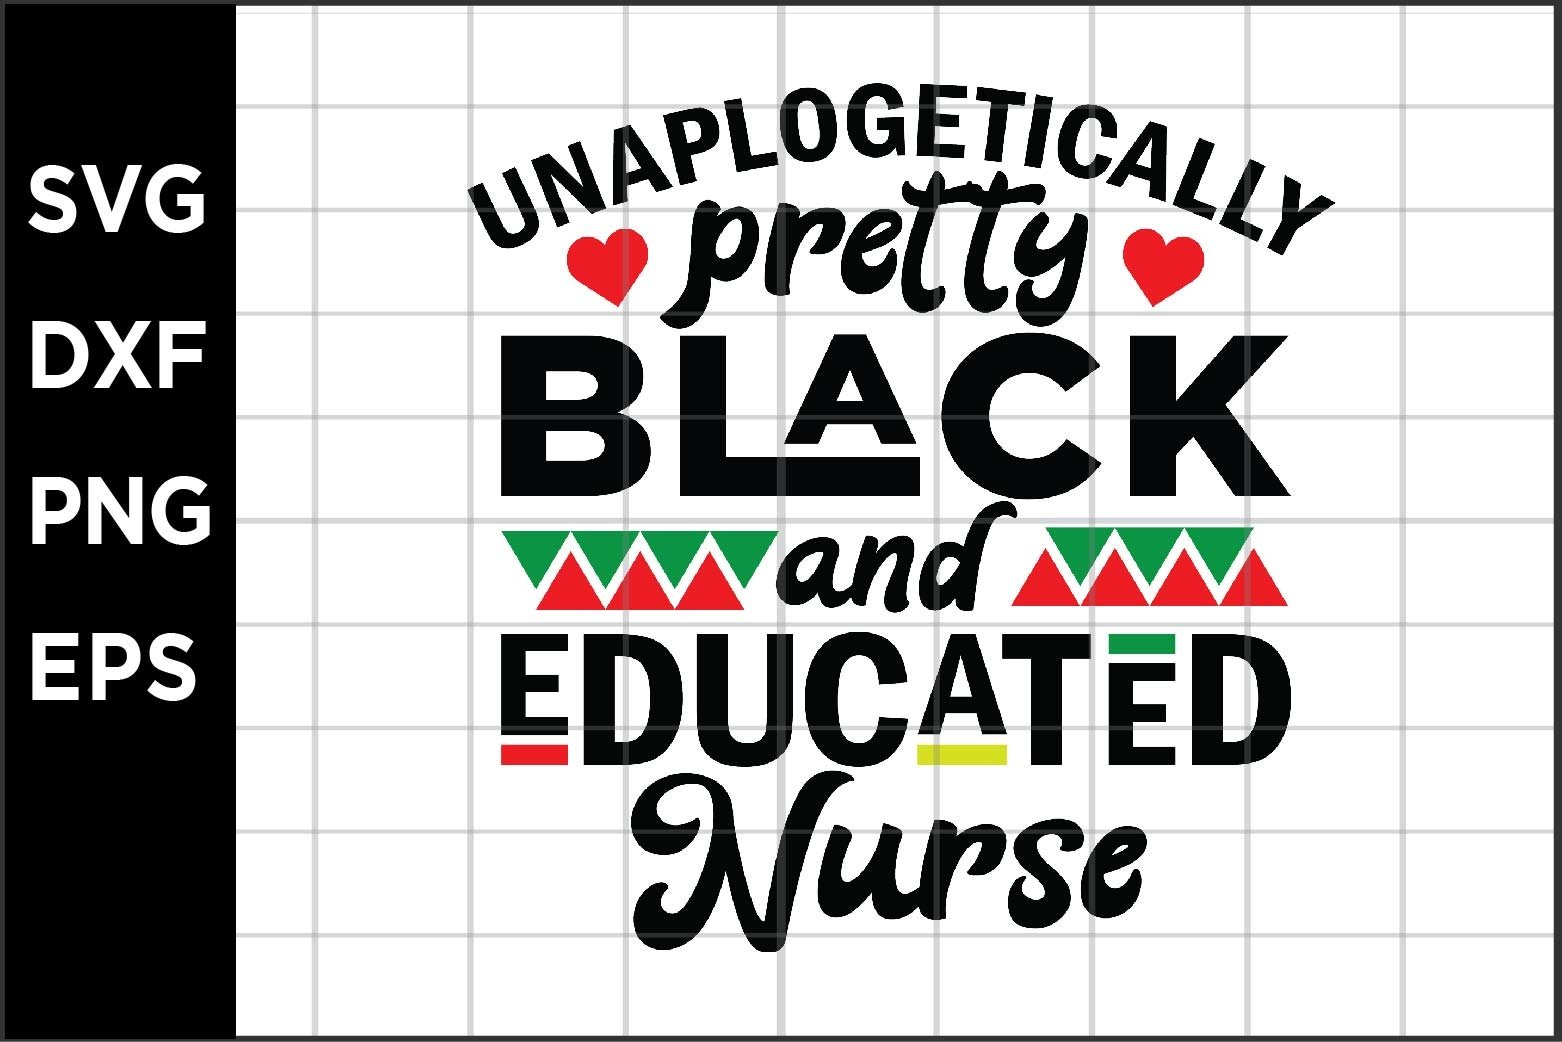 Unapologetically Pretty Black and Educated Nurse SVG example image 1